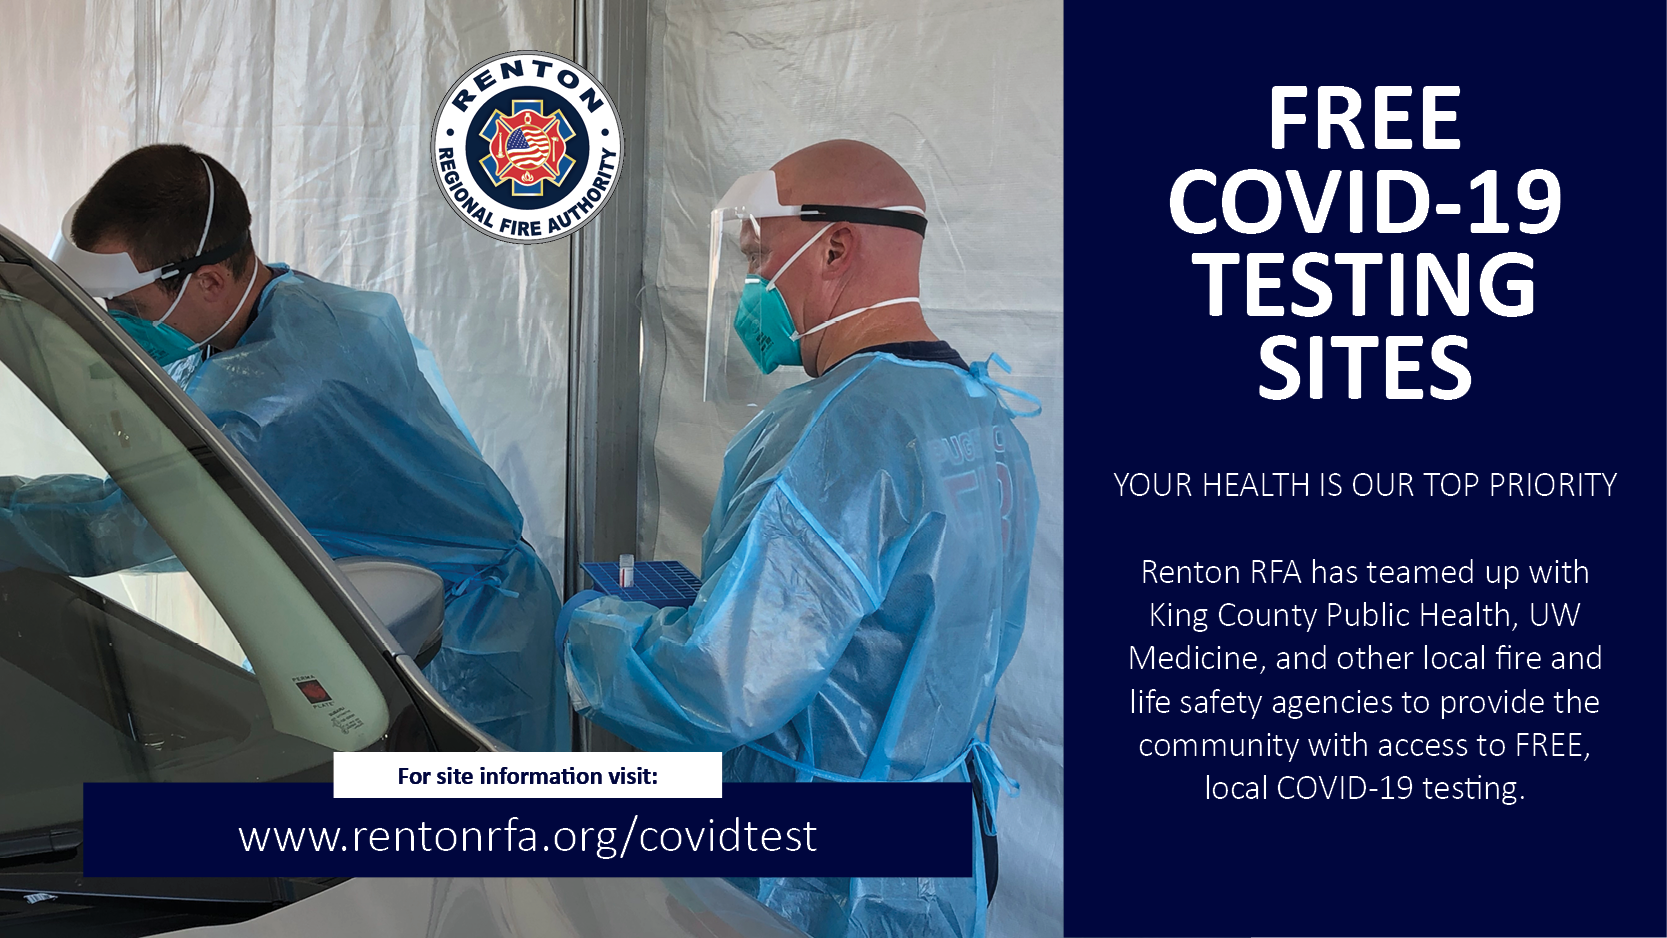 Renton RFA Helps with Free COVID Testing Sites